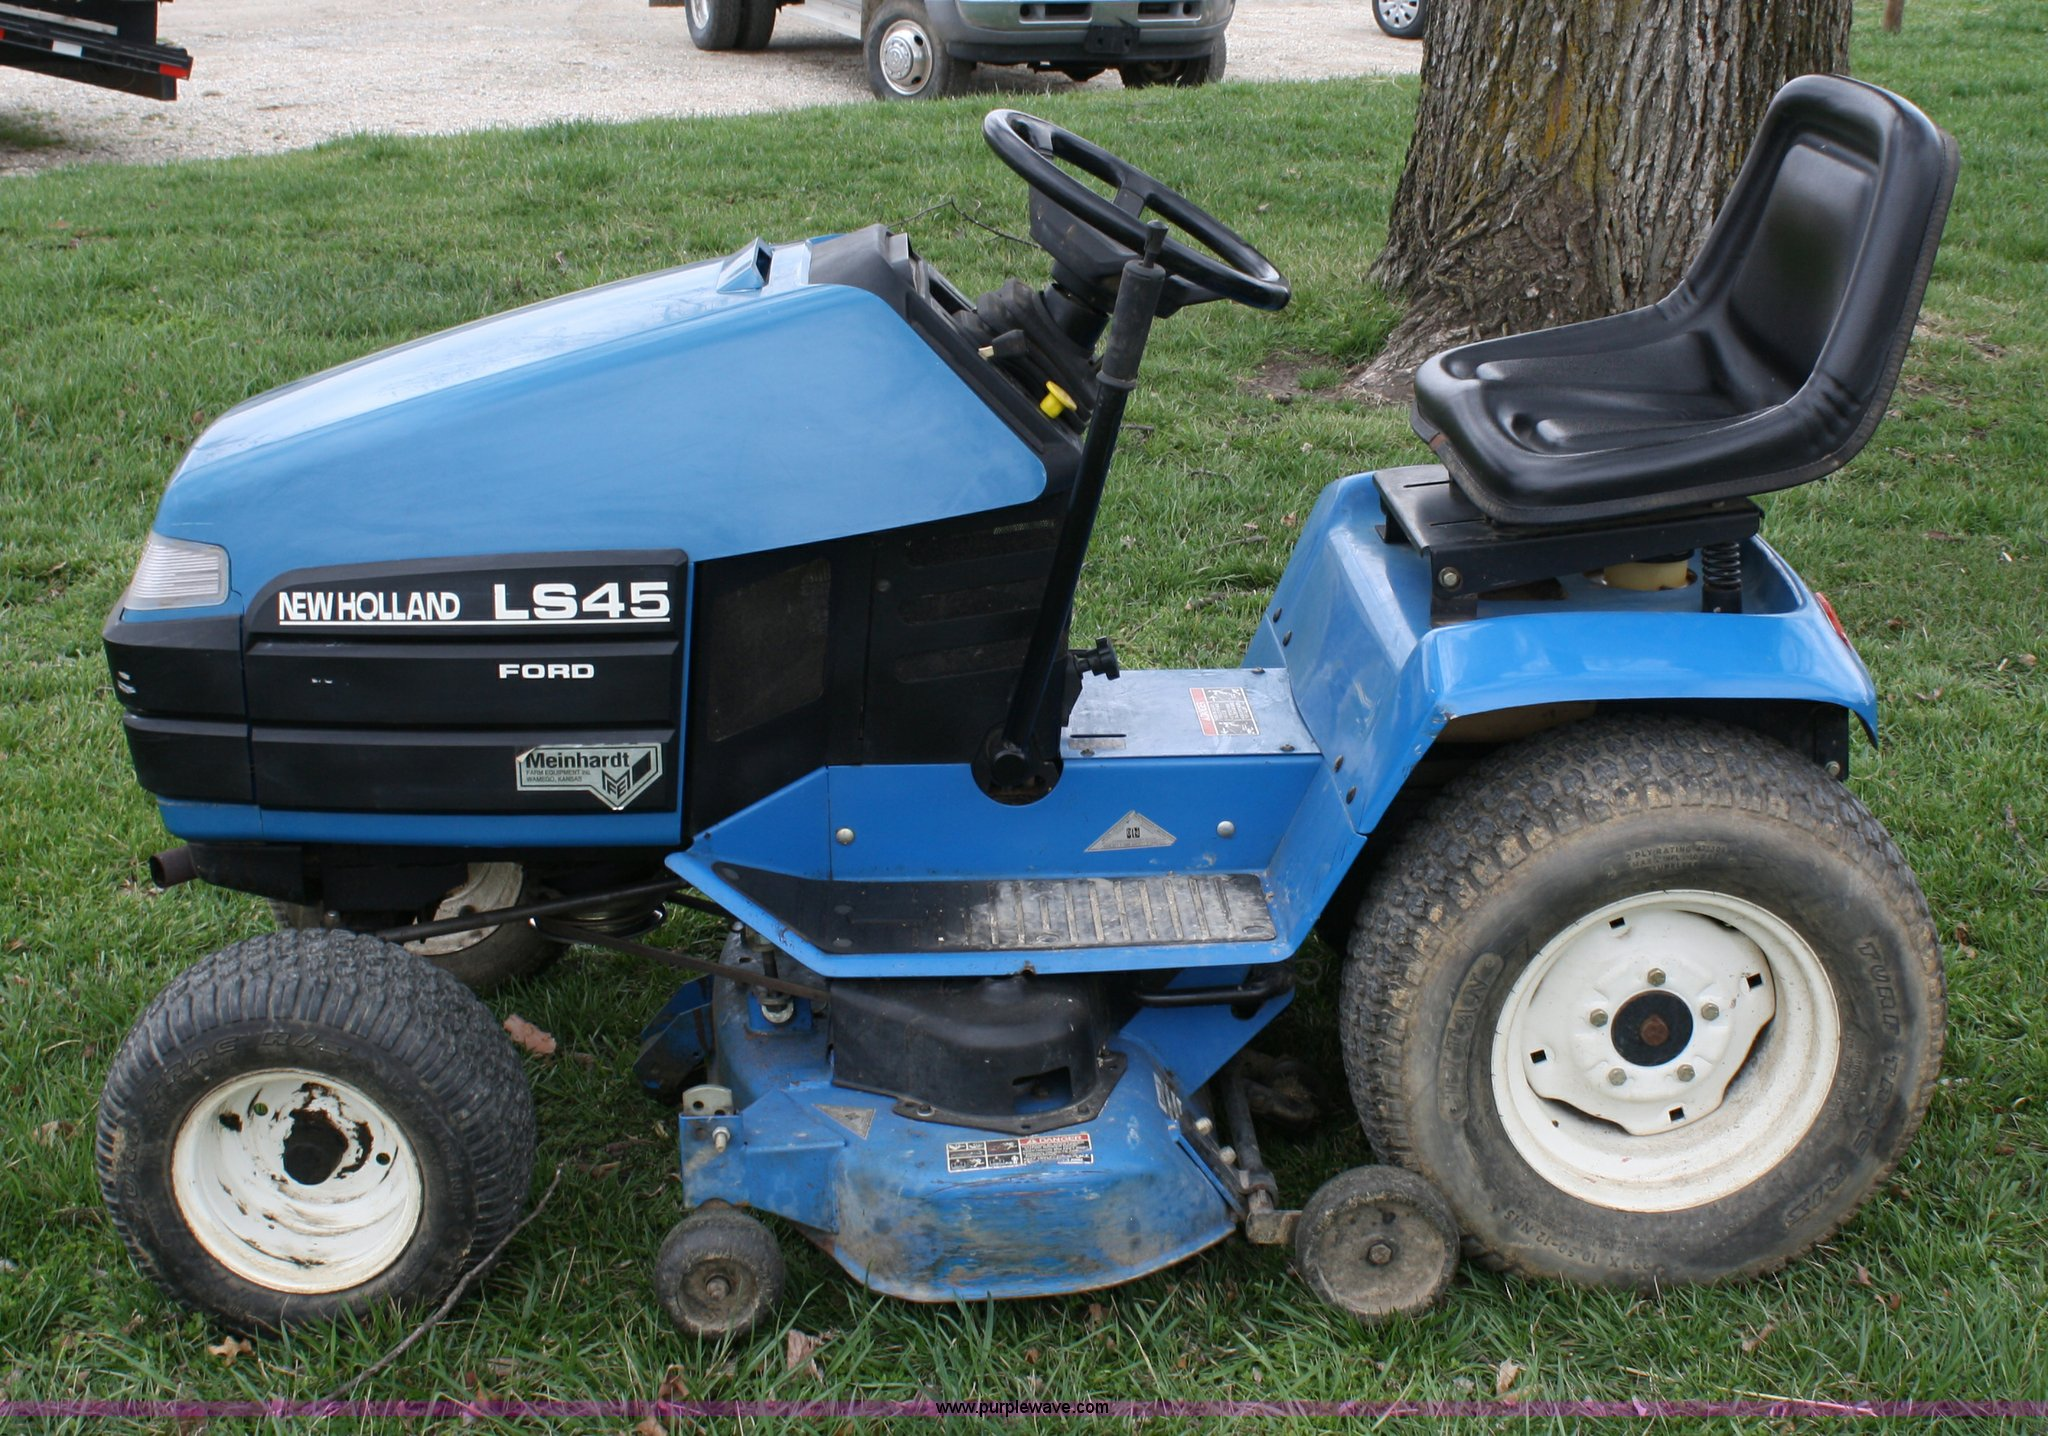 ford new holland ls45 lawn mower item 4673 sold april 2 rh purplewave com Ford New Holland Tractors Ford Ls35 Lawn Tractor